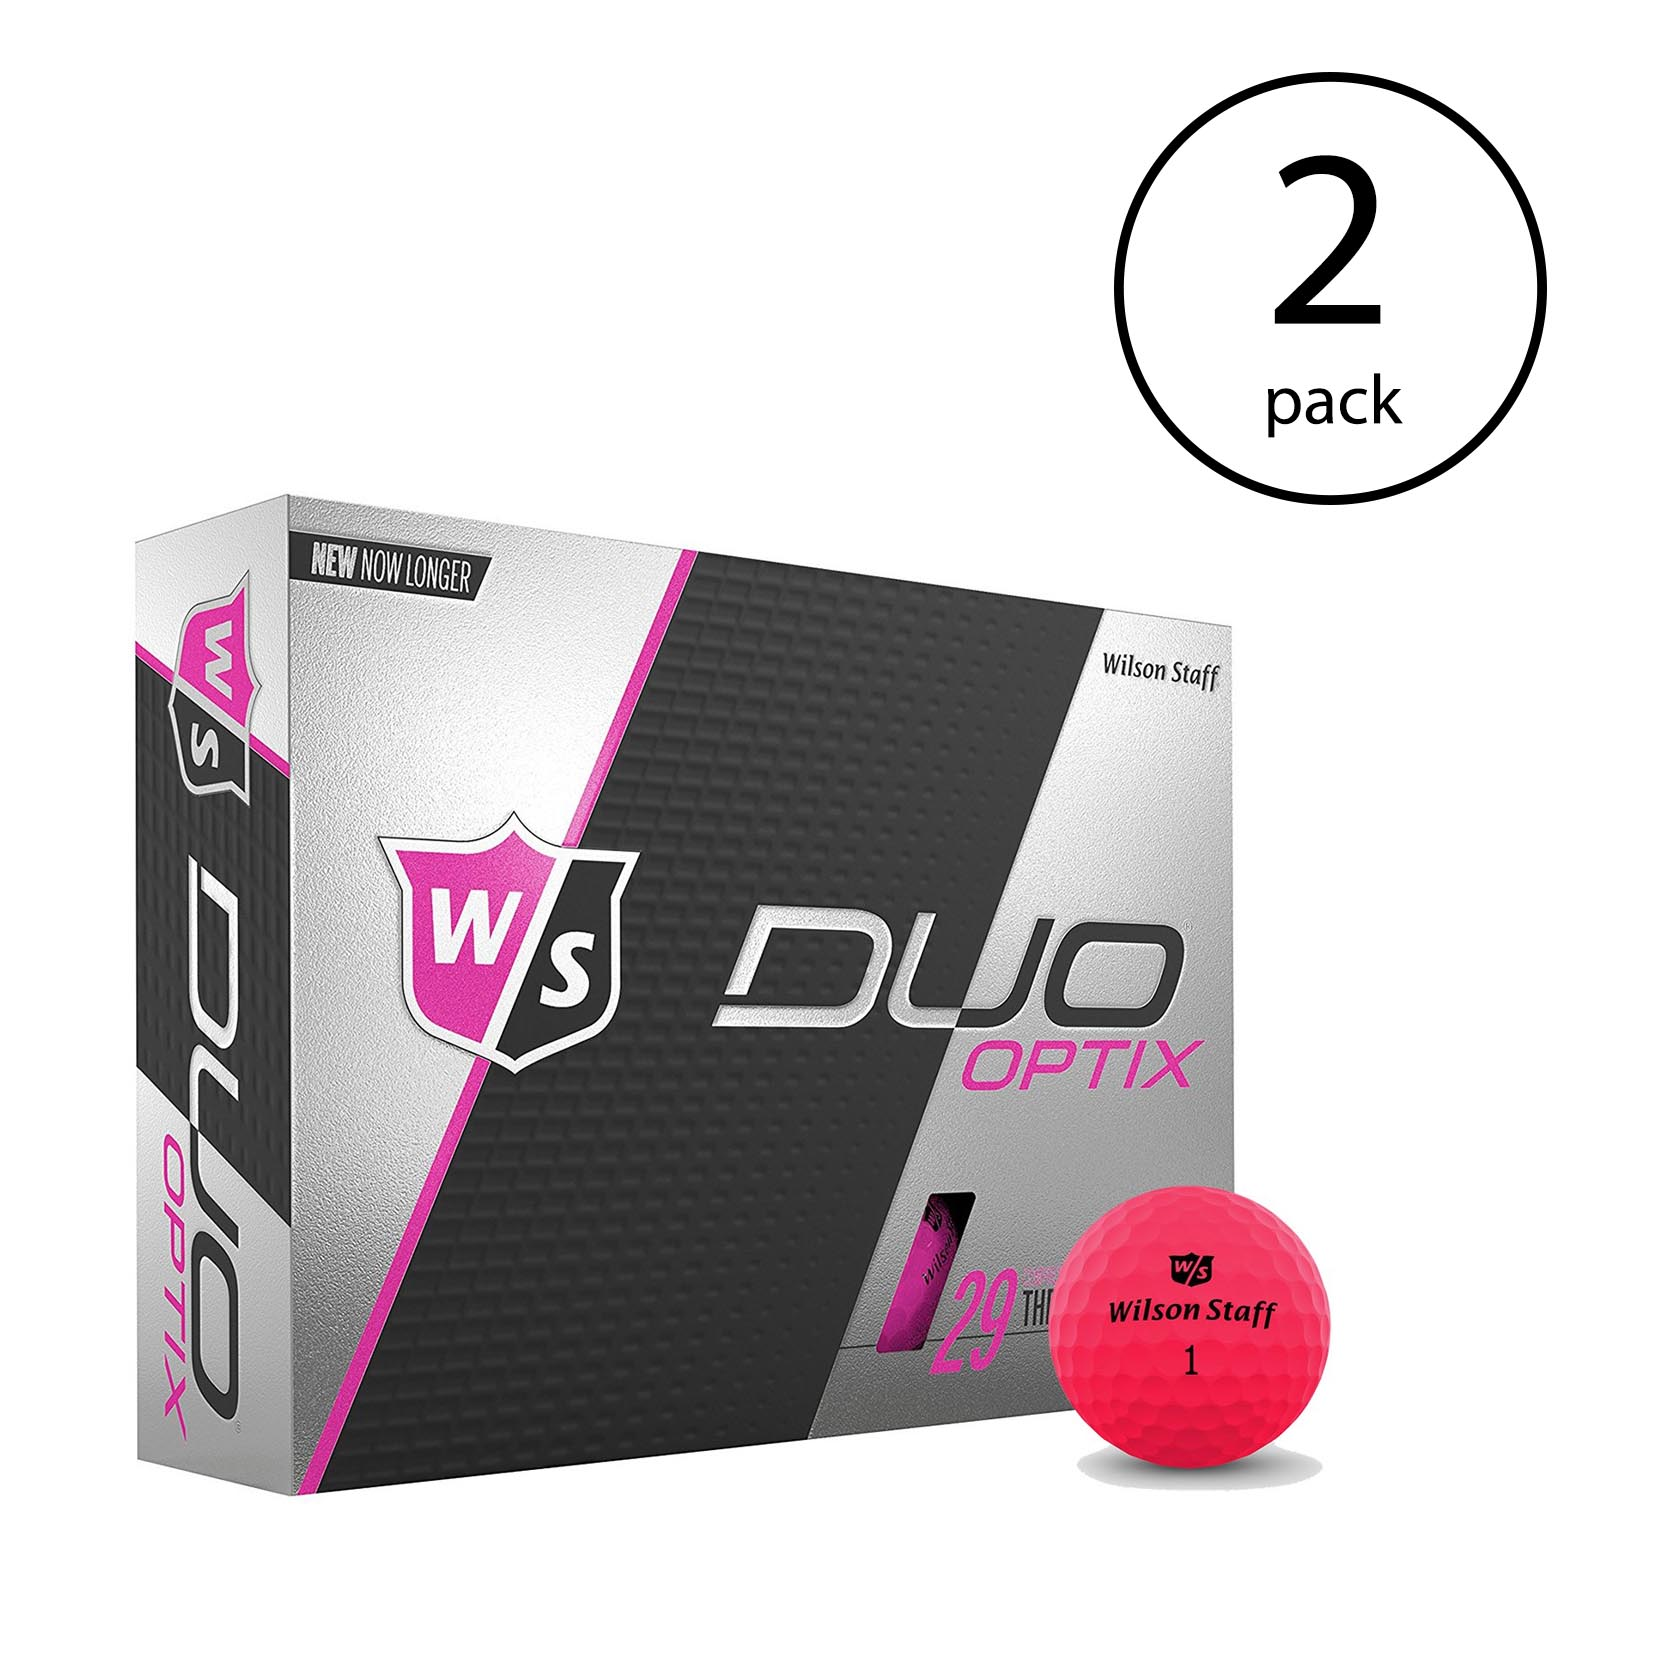 Wilson Staff Duo Soft Optix Proton Pink Low Compression Golf Balls, 2 Dozen